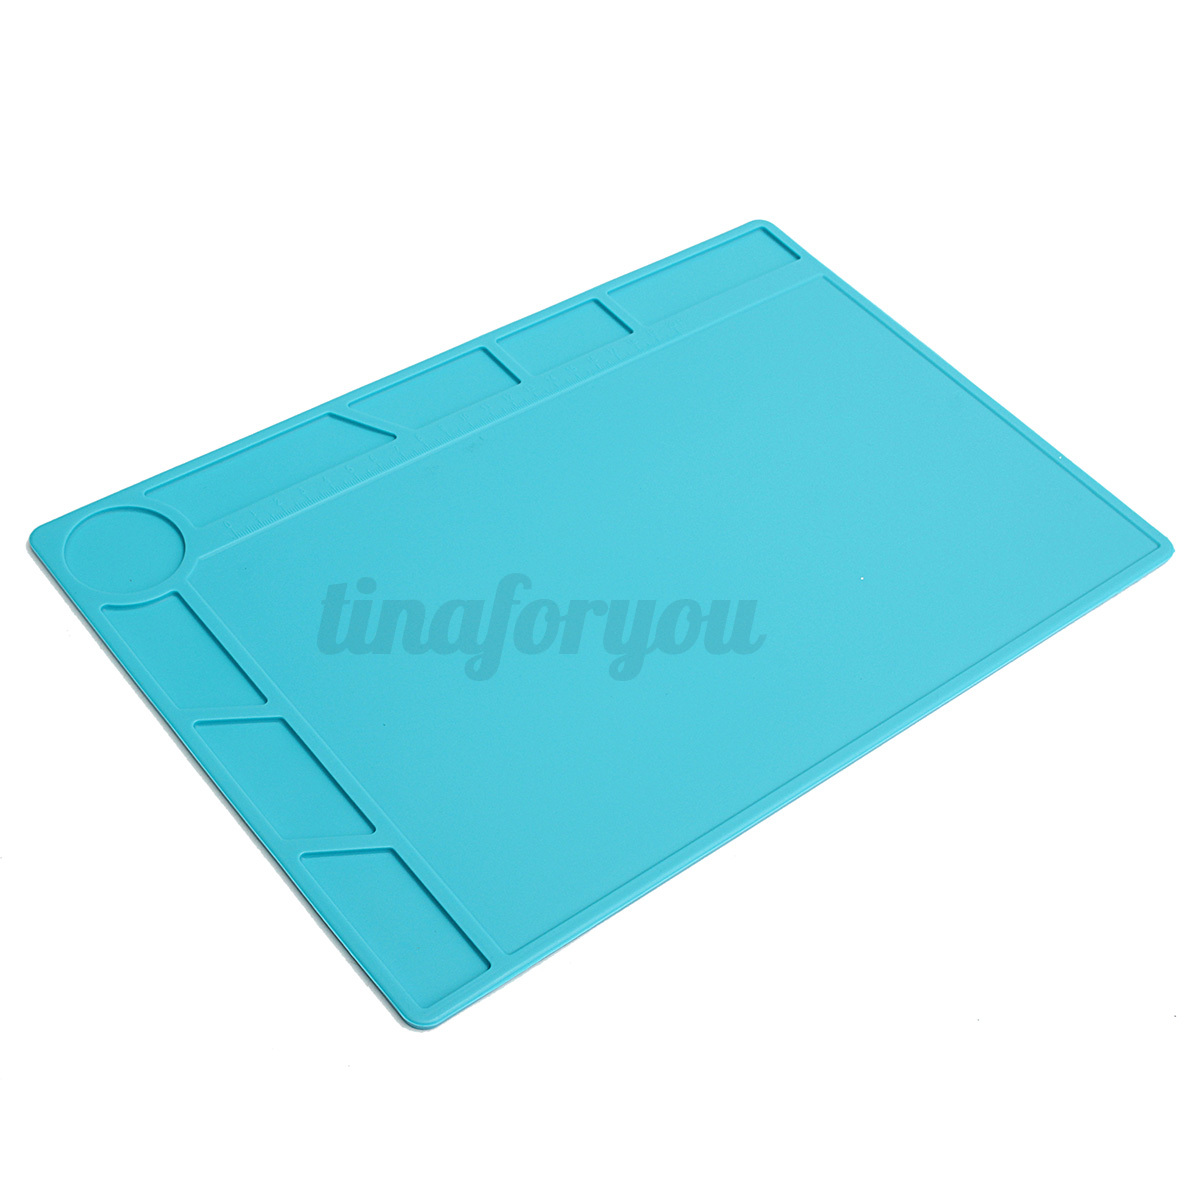 Scaffold Desk Mat : Cm heat insulation silicone pad desk mat maintenance